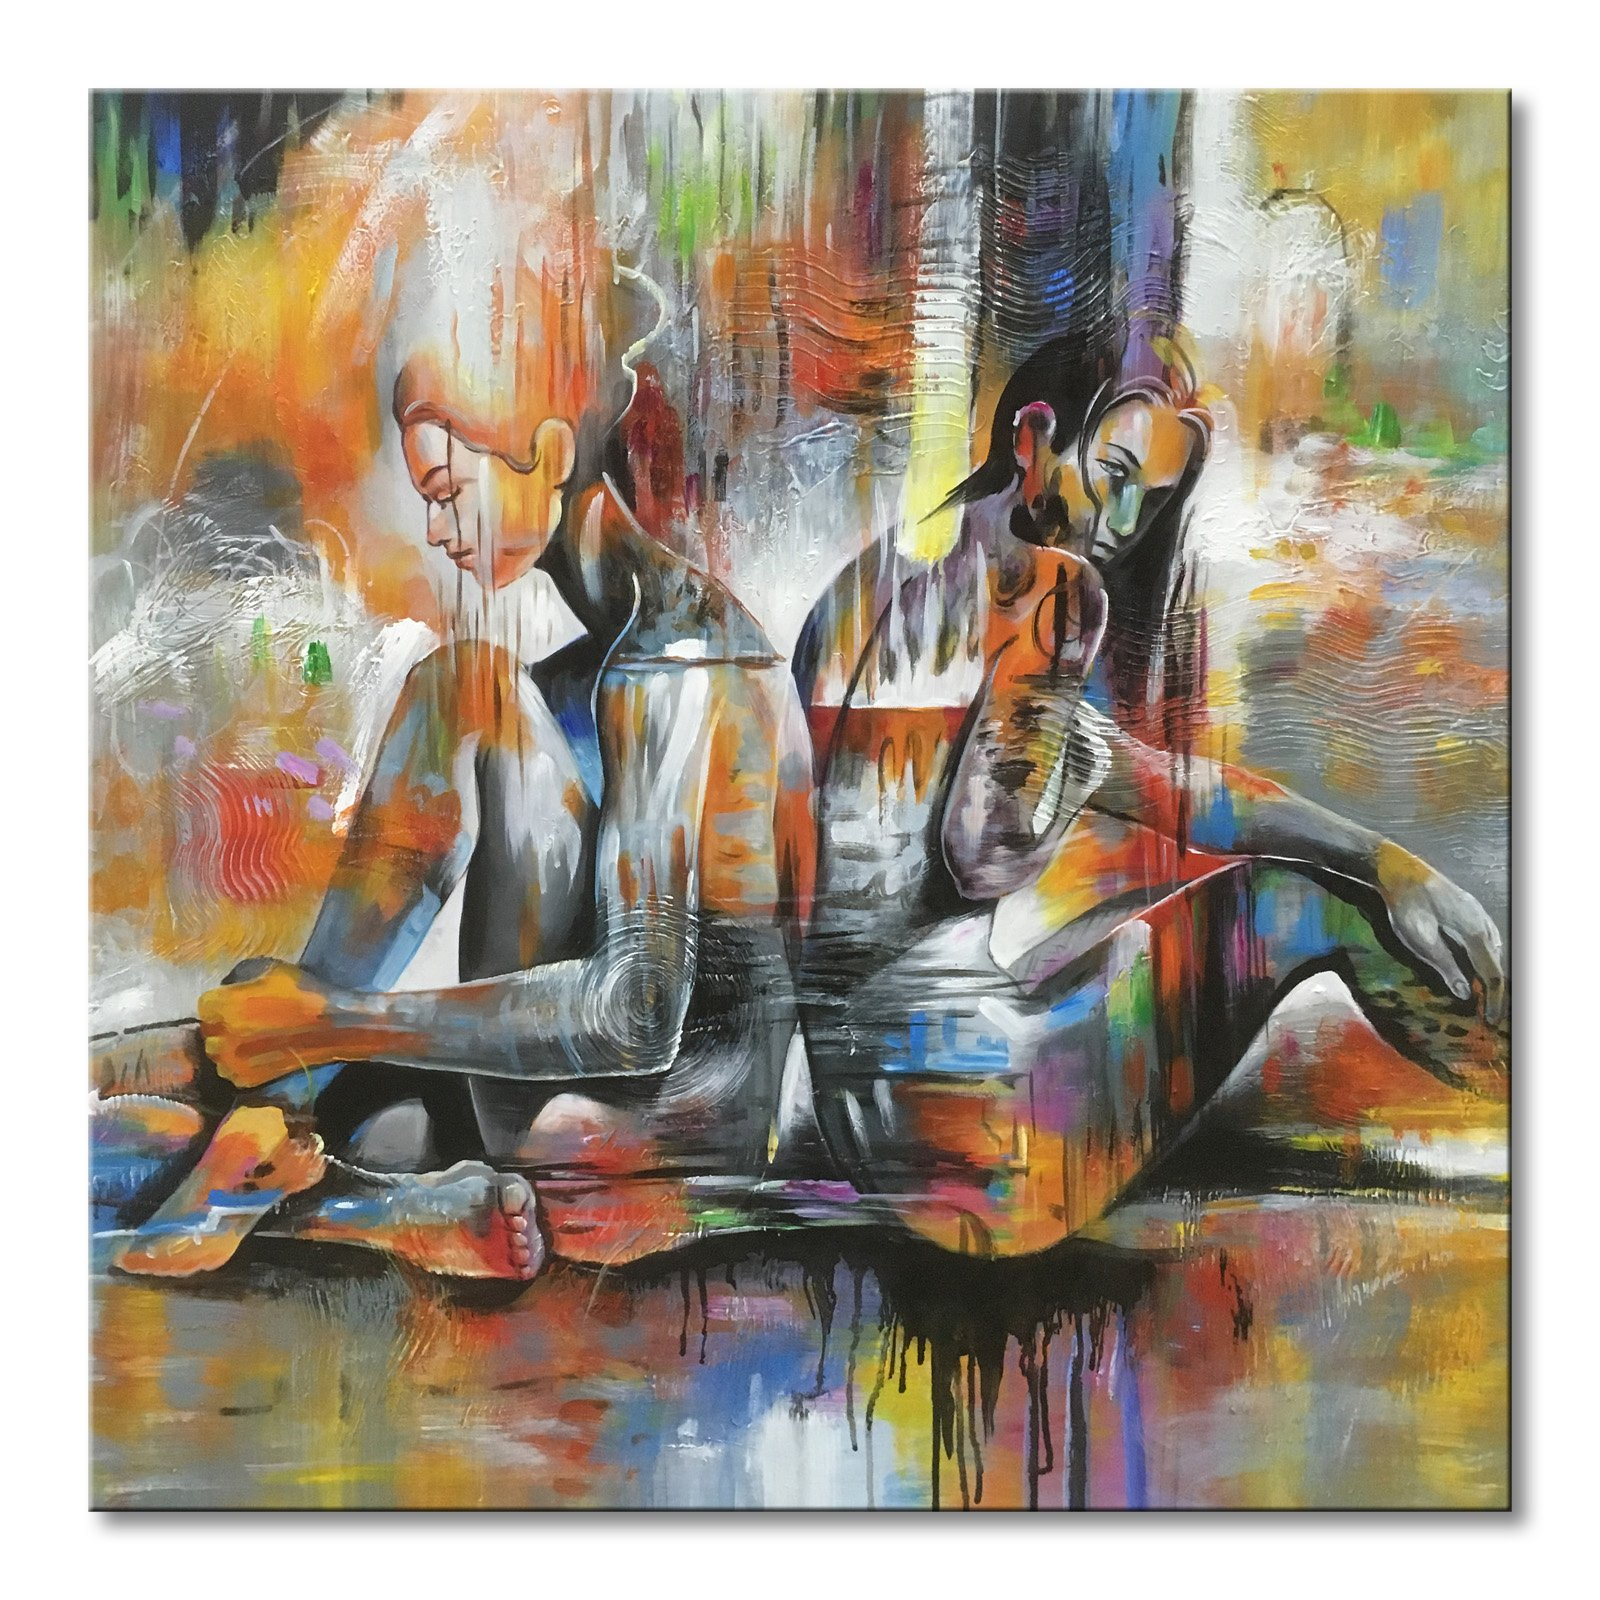 Everfun Abstract Canvas Wall Art Nude Girl Oil Painting Hand Painted Modern Naked Lady Back to Back Figurative Artwork Framed Colorful Picture Decoration 36''Wx36''H